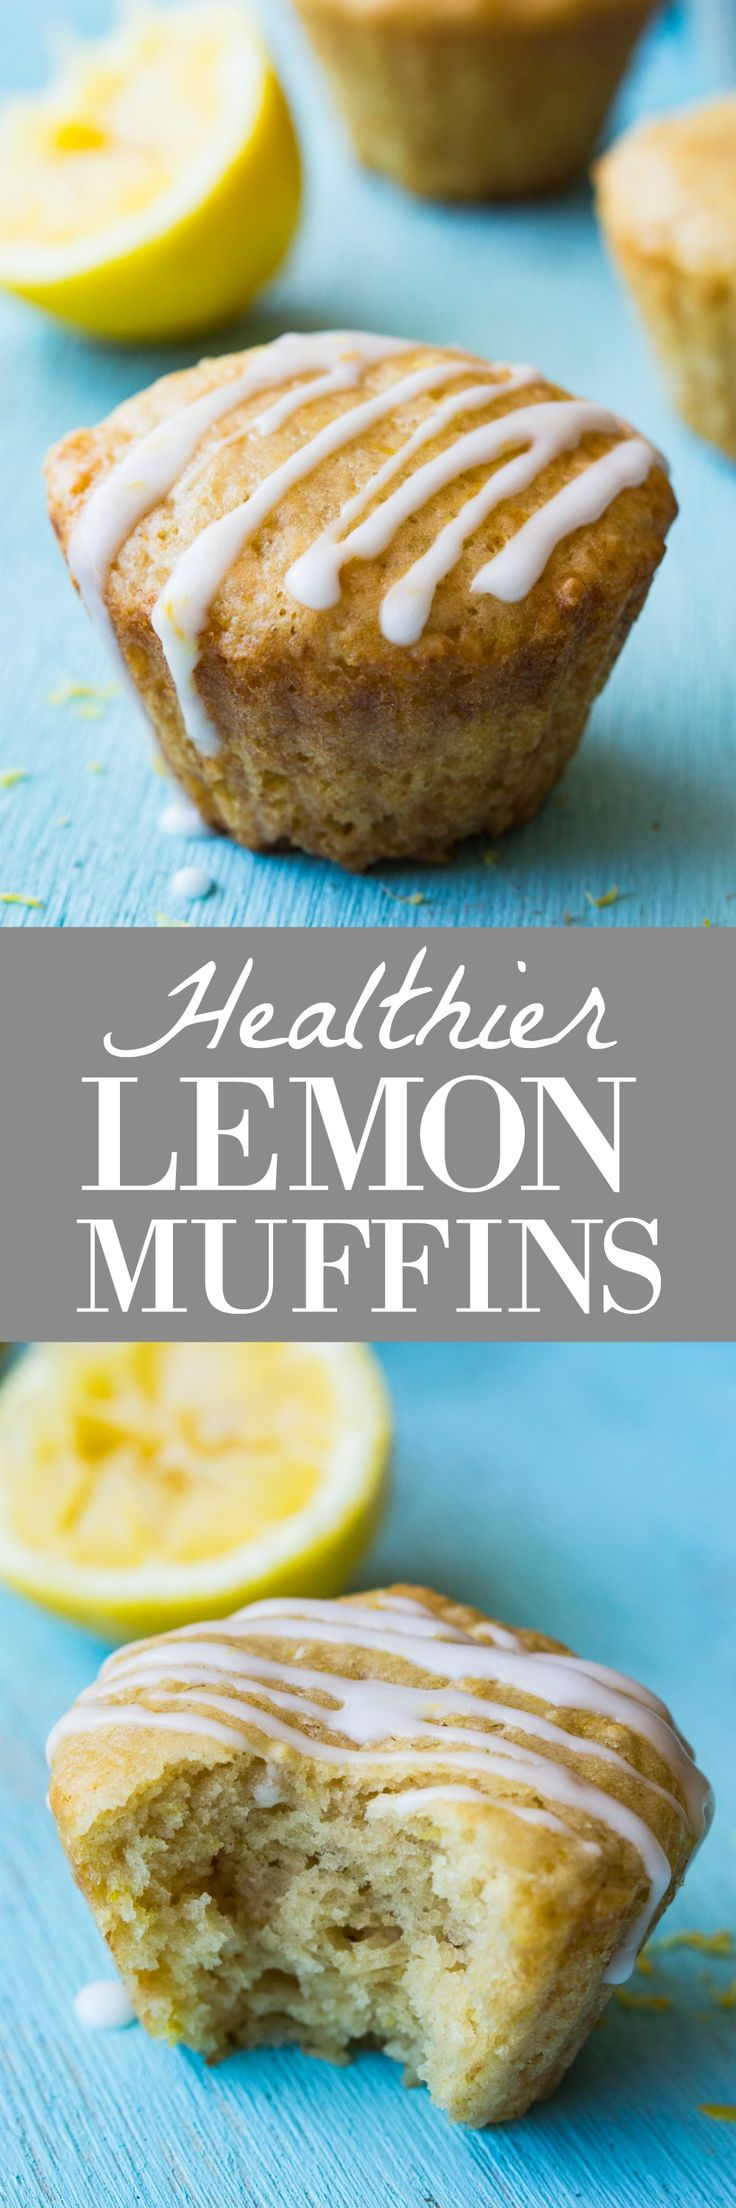 This small batch of healthier lemon muffins will definitely brighten up your breakfast in the morning. Made with whole wheat flour, greek yogurt, and fresh squeezed lemon juice.  Healthier Lemon Muffins.  In a small batch.  To prevent the problem that occurs with things that taste really good.  Eating all of them.  Which then defeats the...Read More »